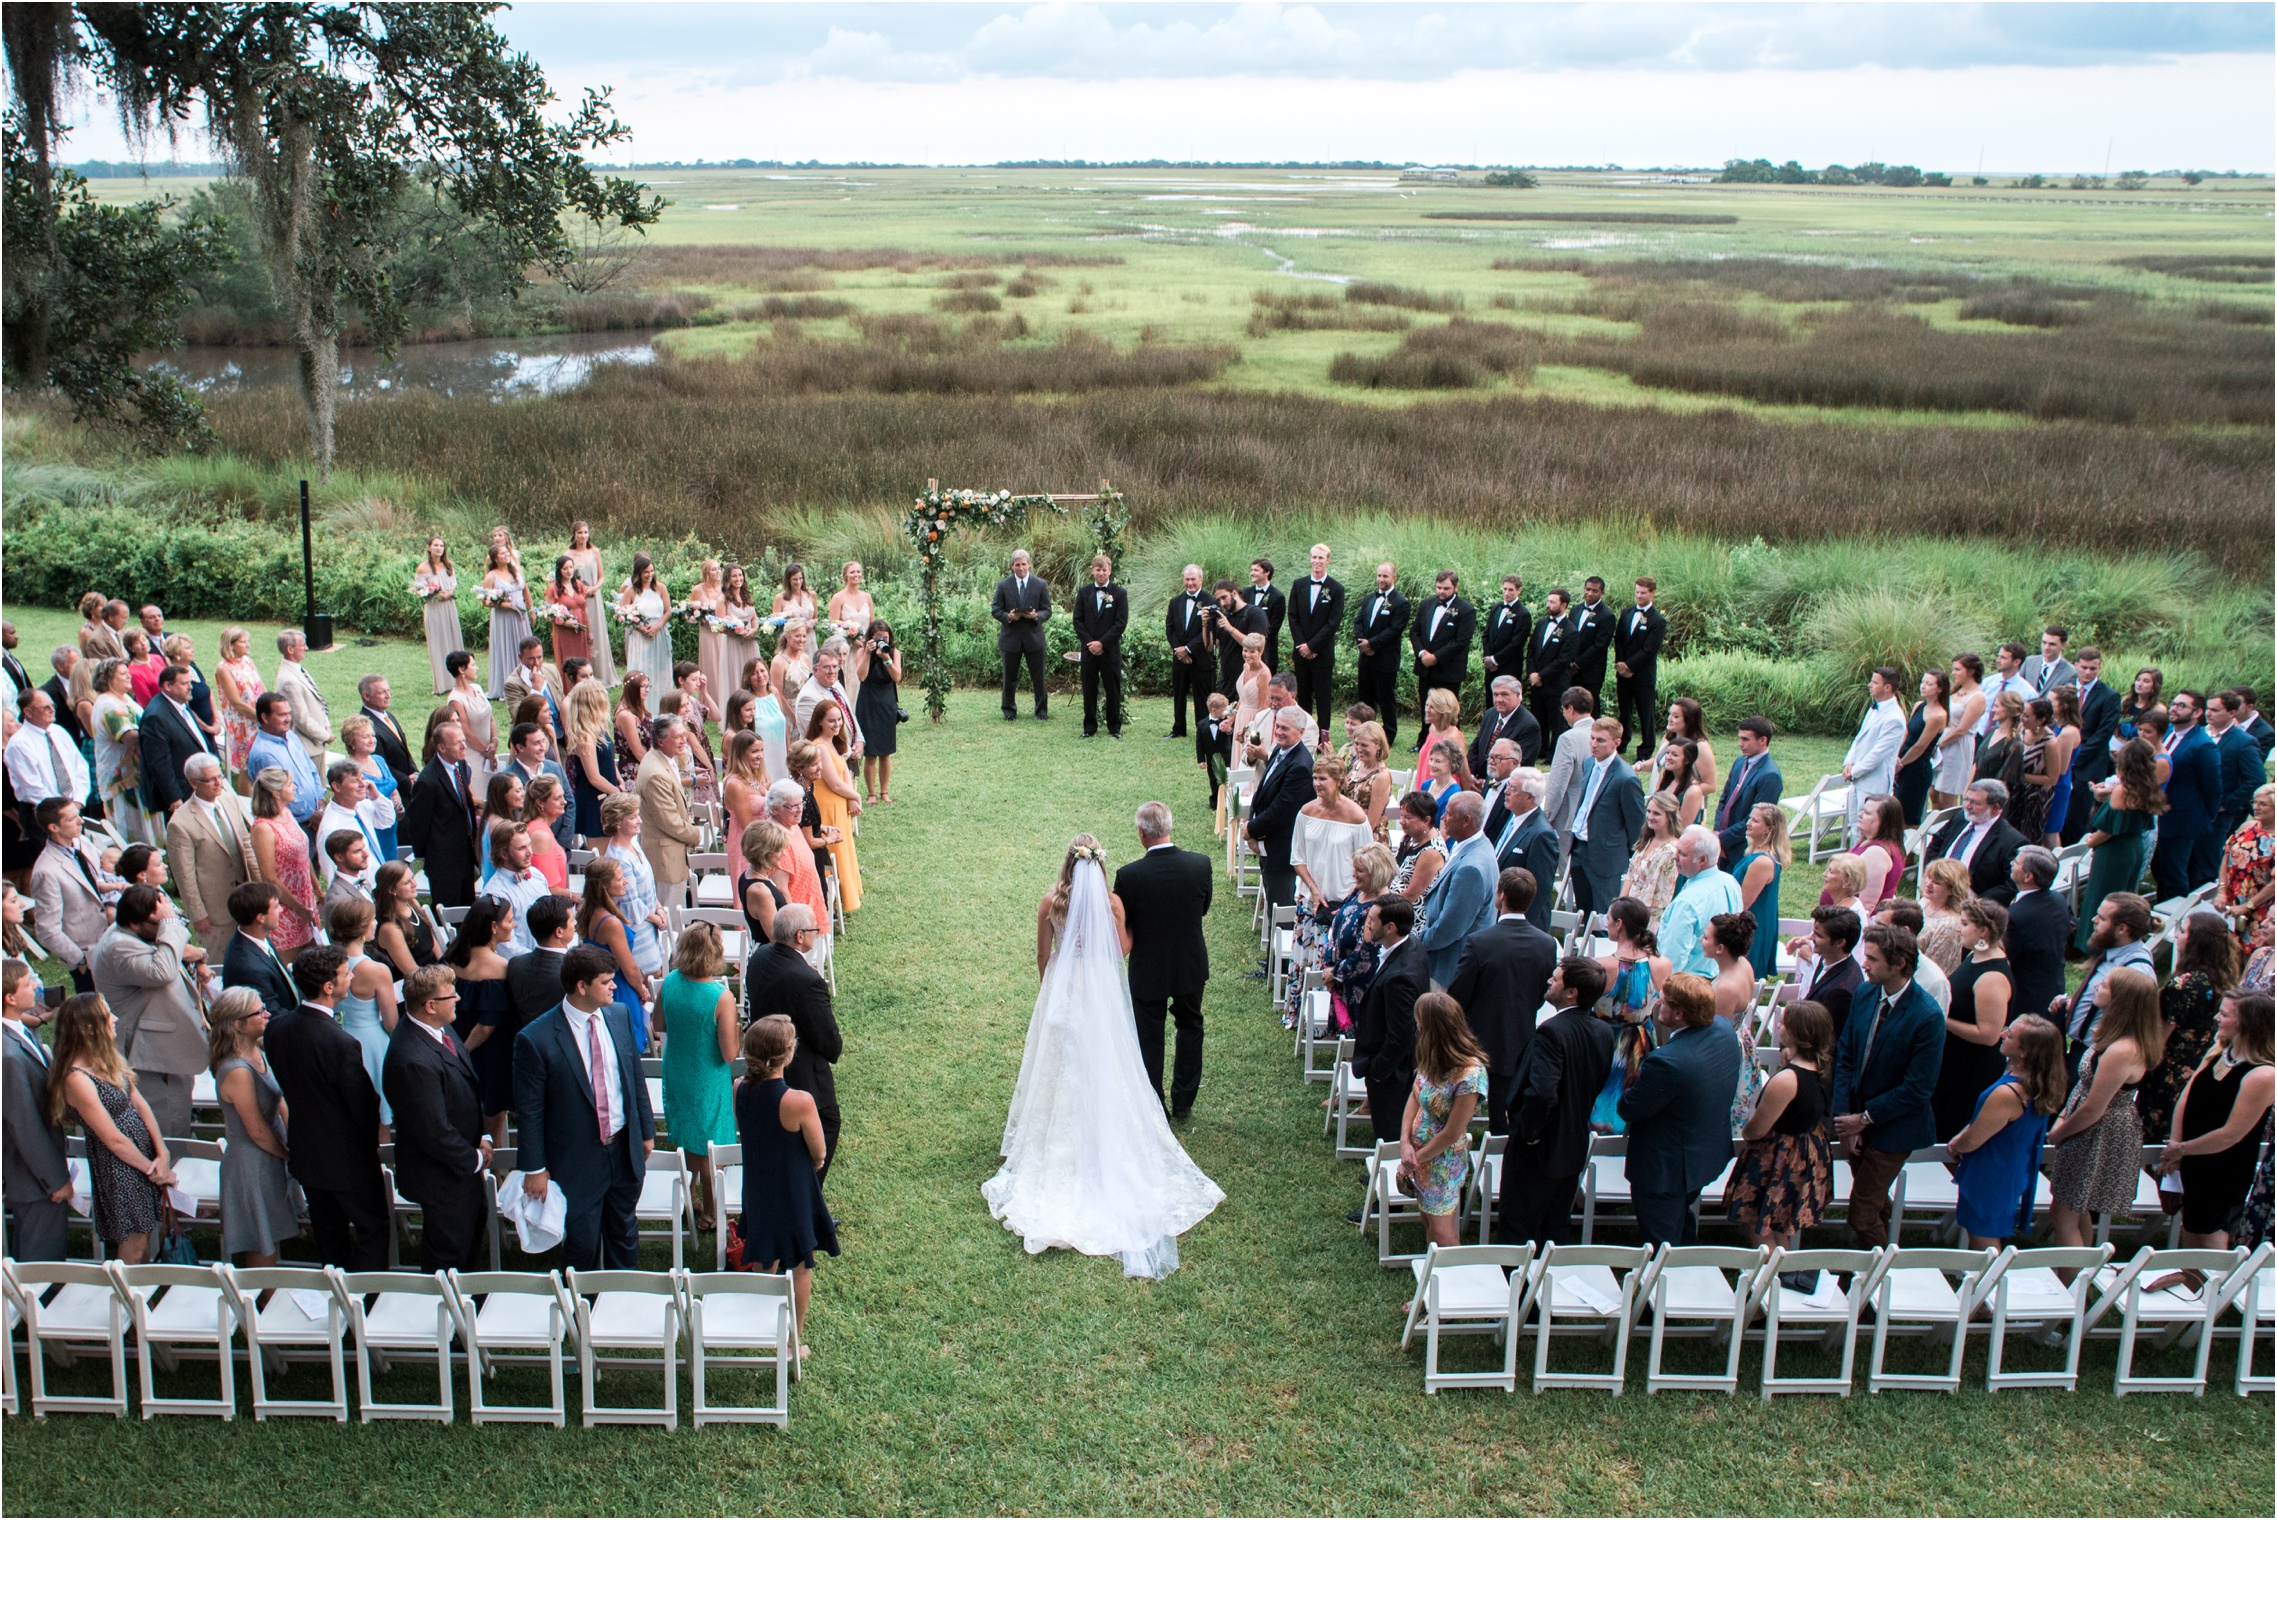 Rainey_Gregg_Photography_St._Simons_Island_Georgia_California_Wedding_Portrait_Photography_0069.jpg